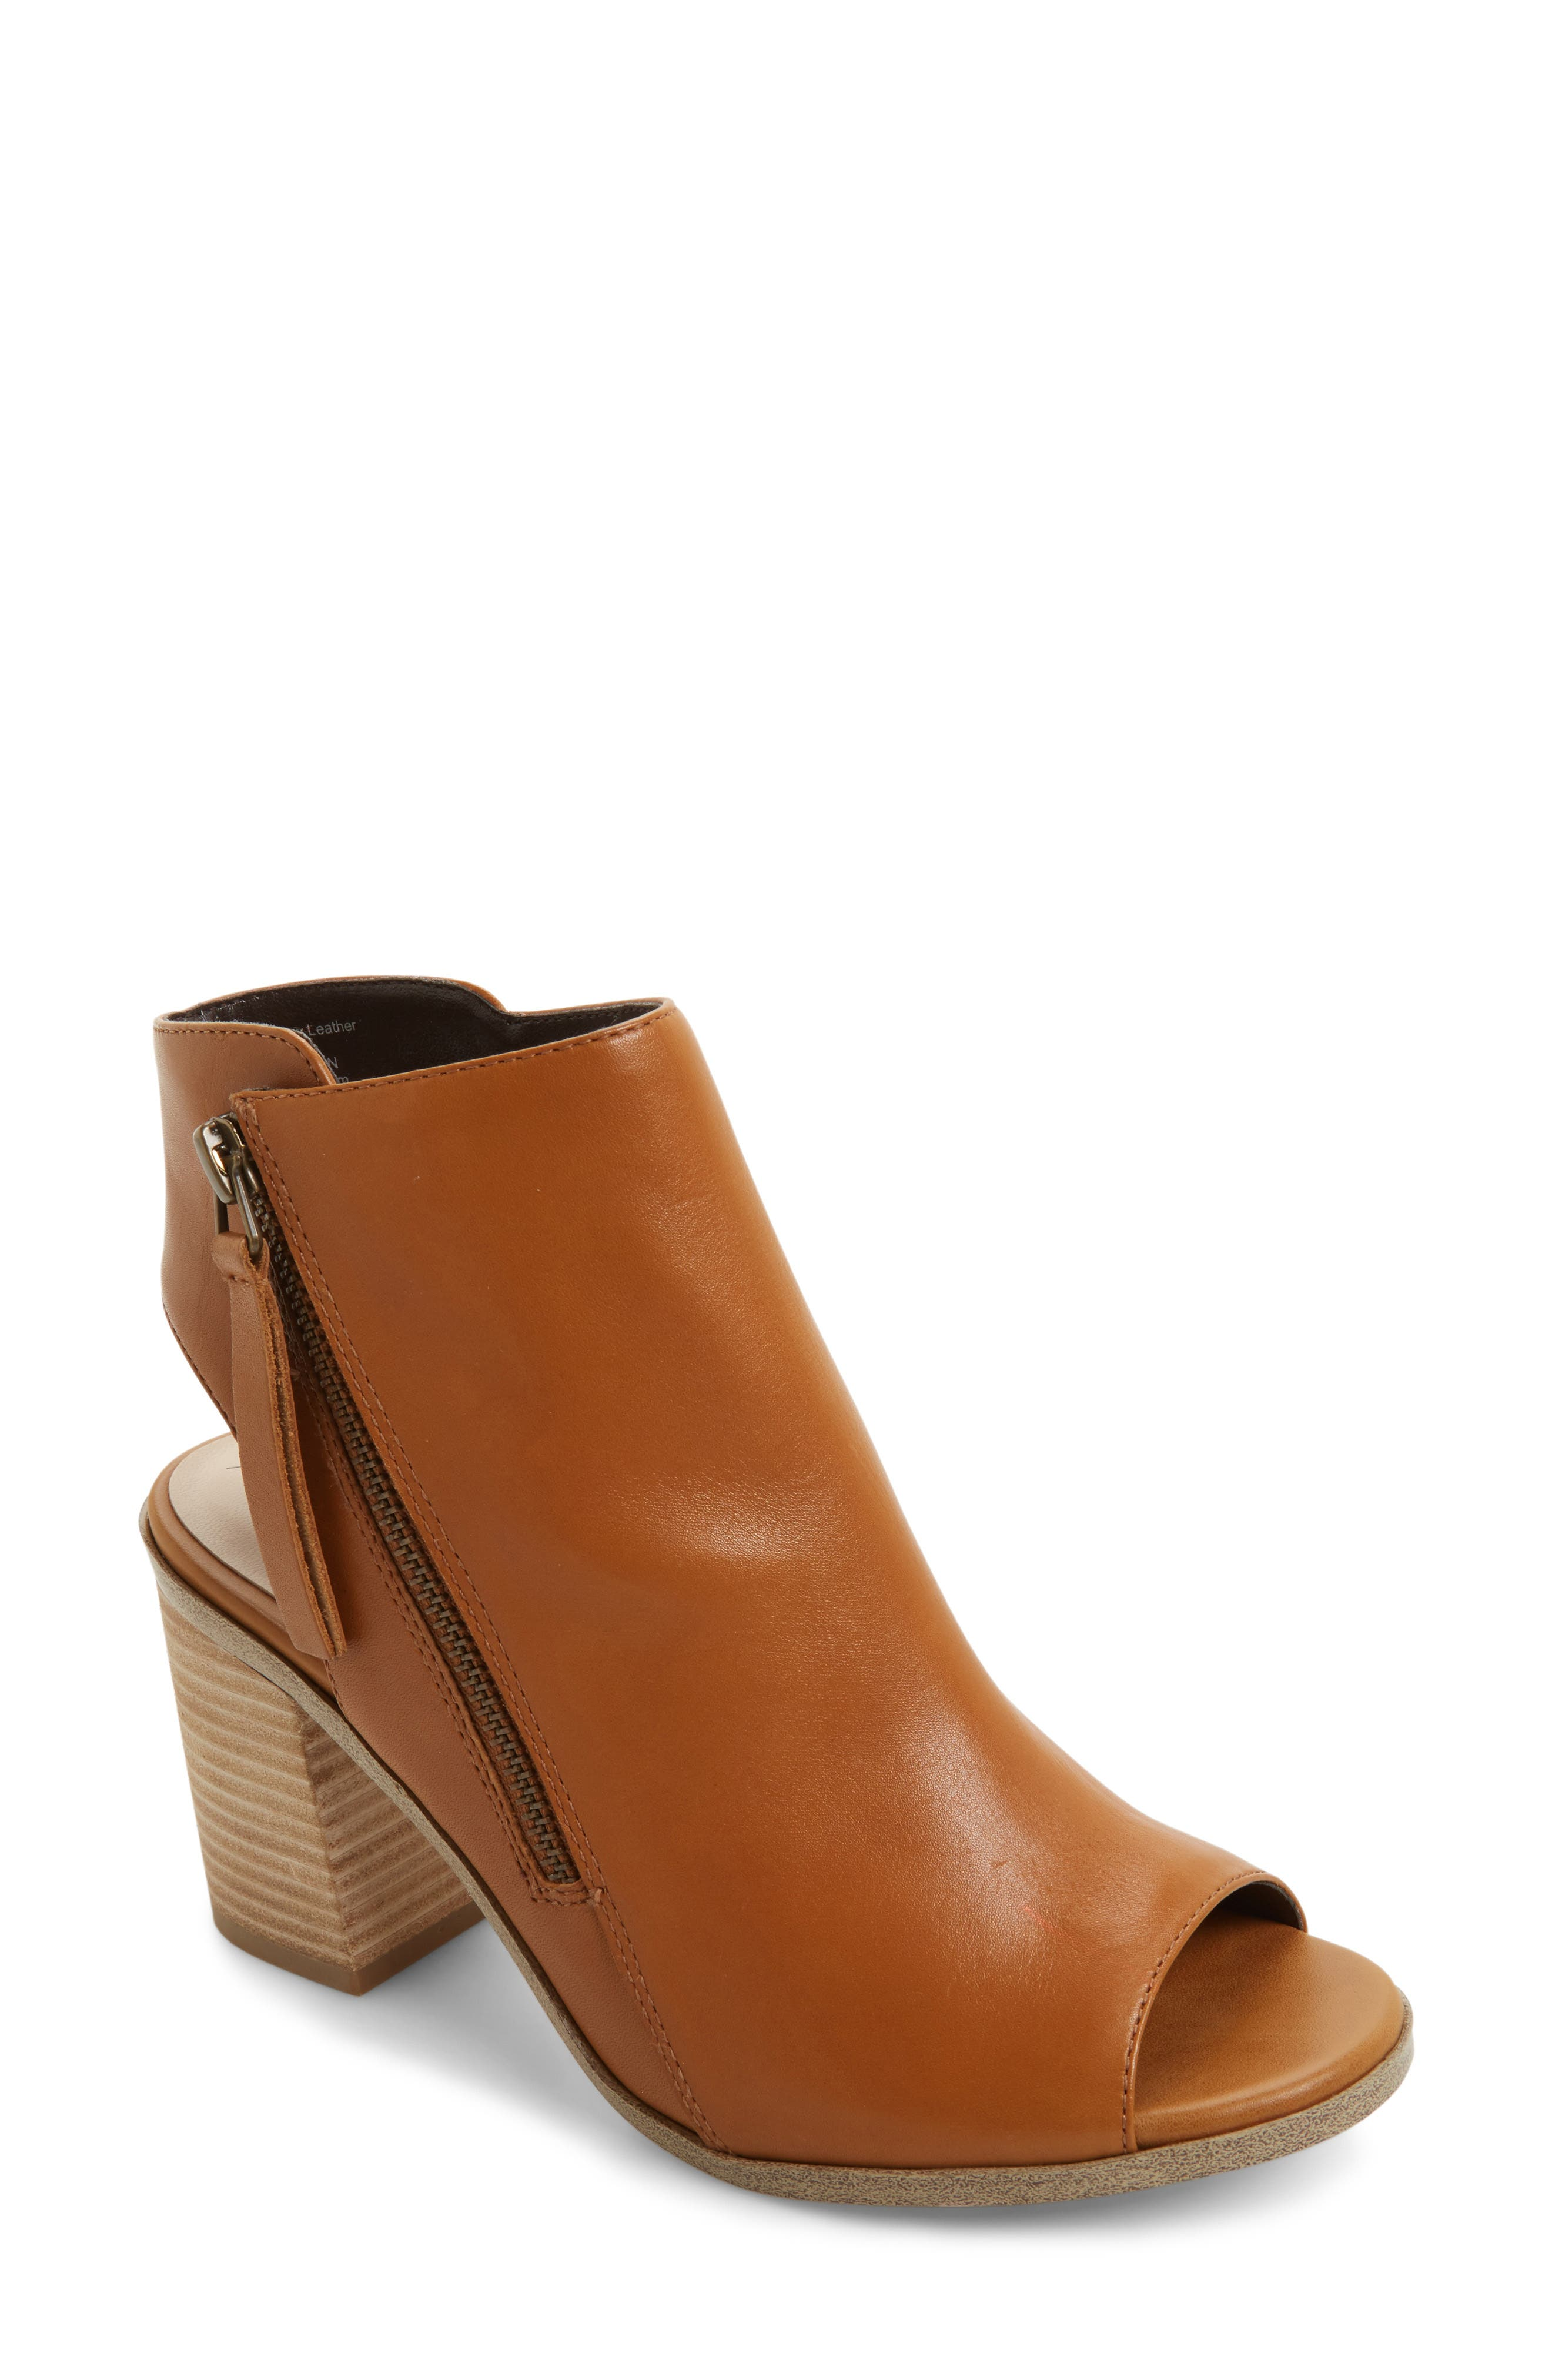 outlet pay with visa Sole Society Block Heel Peep-toe Booties - Arizona free shipping clearance buy cheap get authentic vtbYLuVHxR